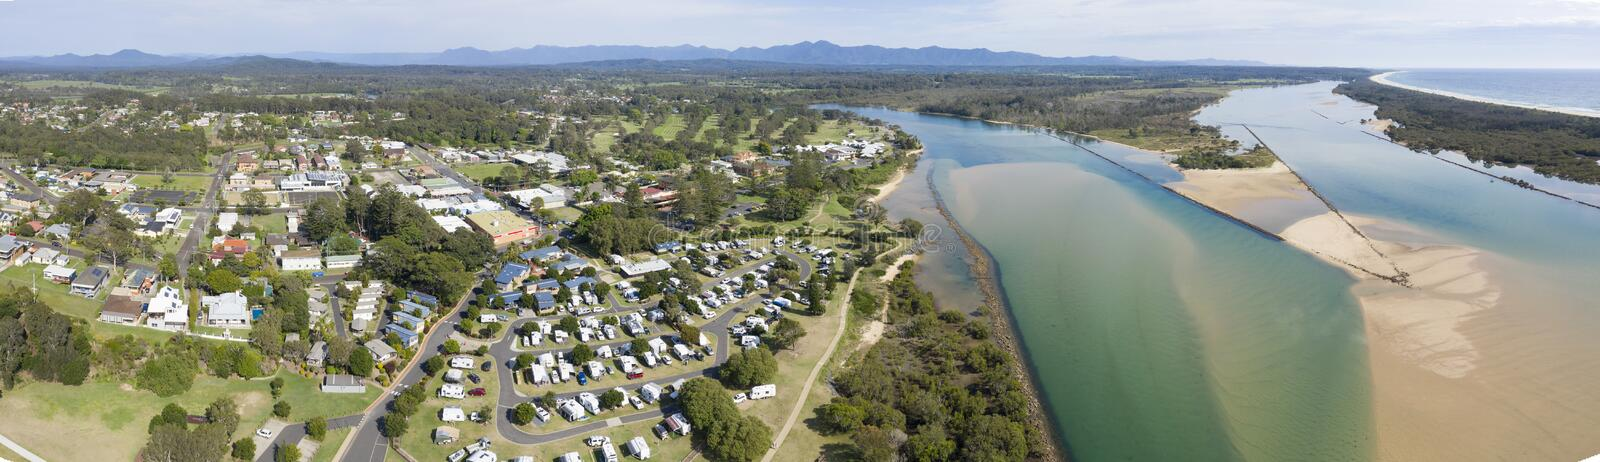 Urunga, New South Wales, Australia,. Urunga NSW where the Bellinger and Kalang rivers meet and empty into the pacific ocean stock images